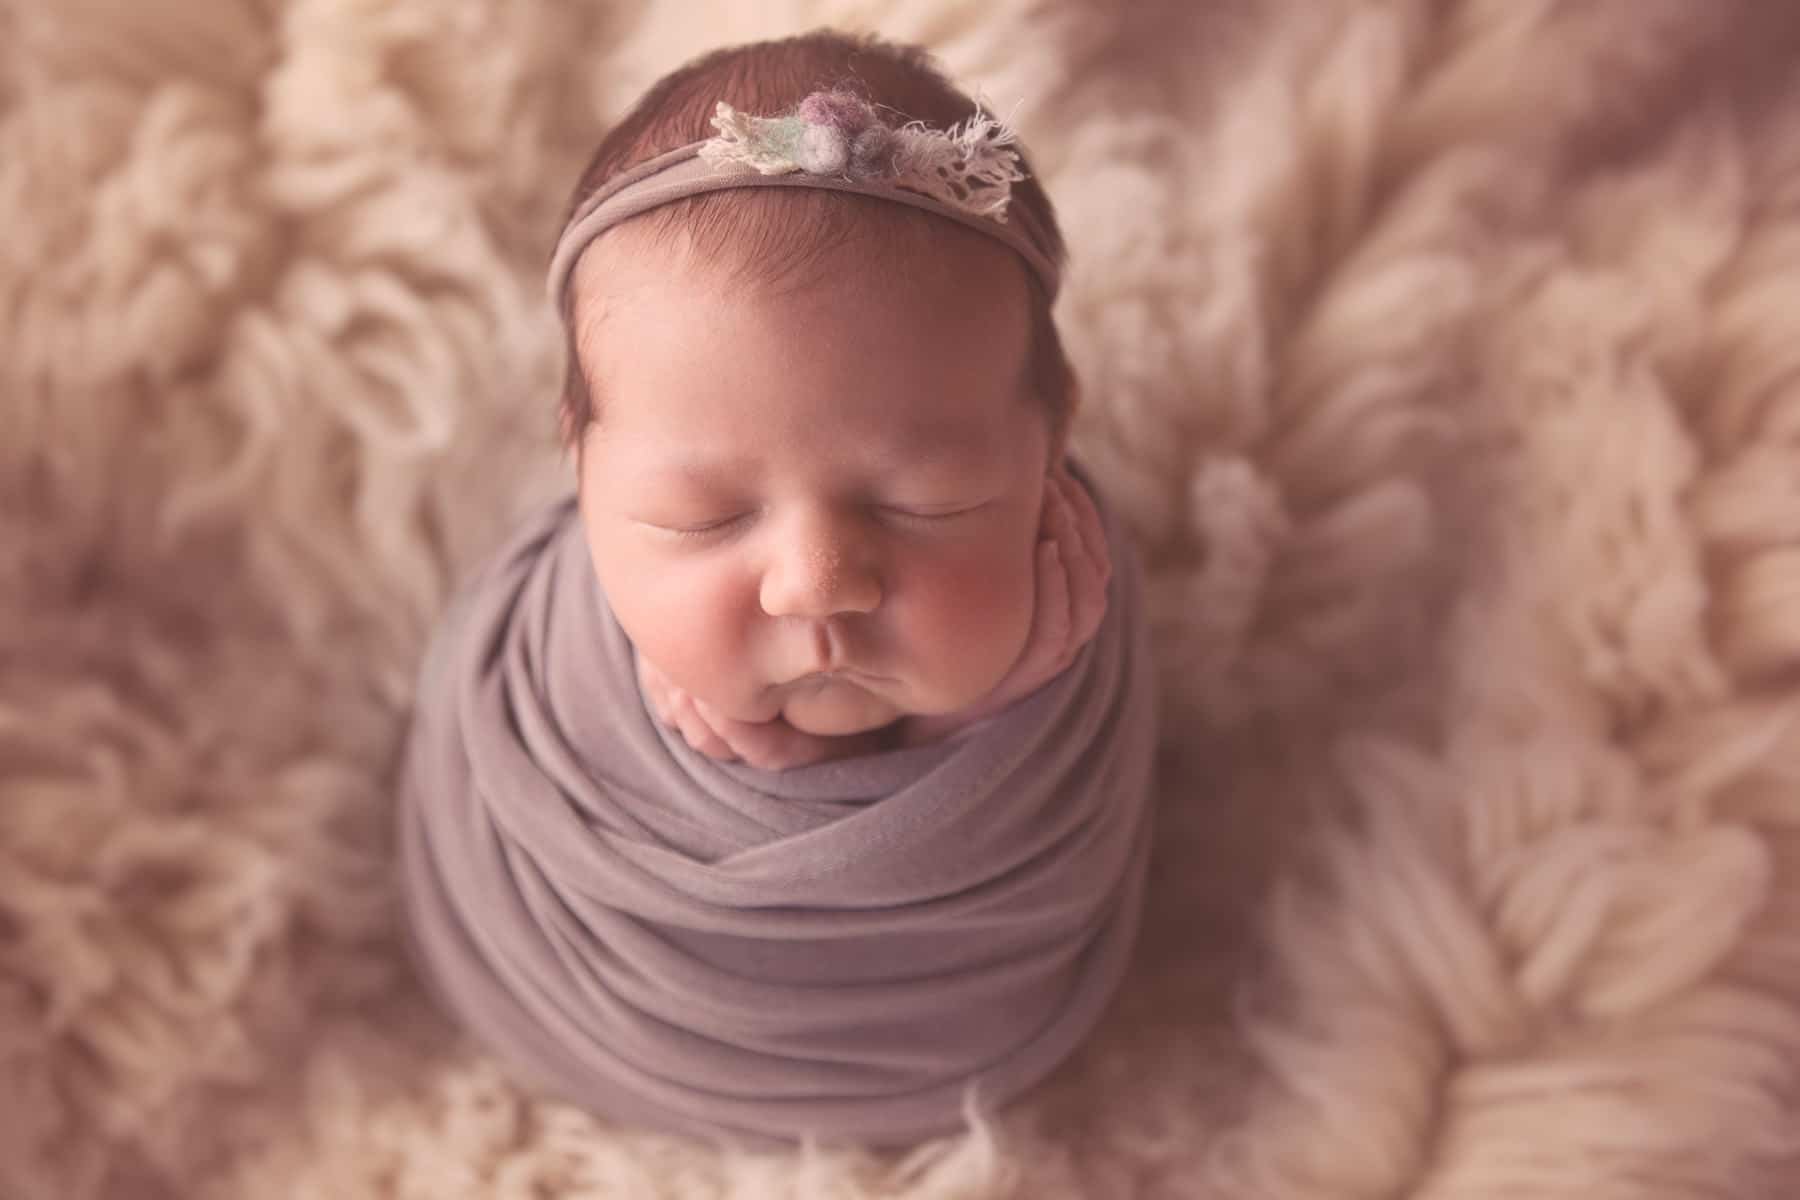 newborn baby swaddled with hands on cheeks